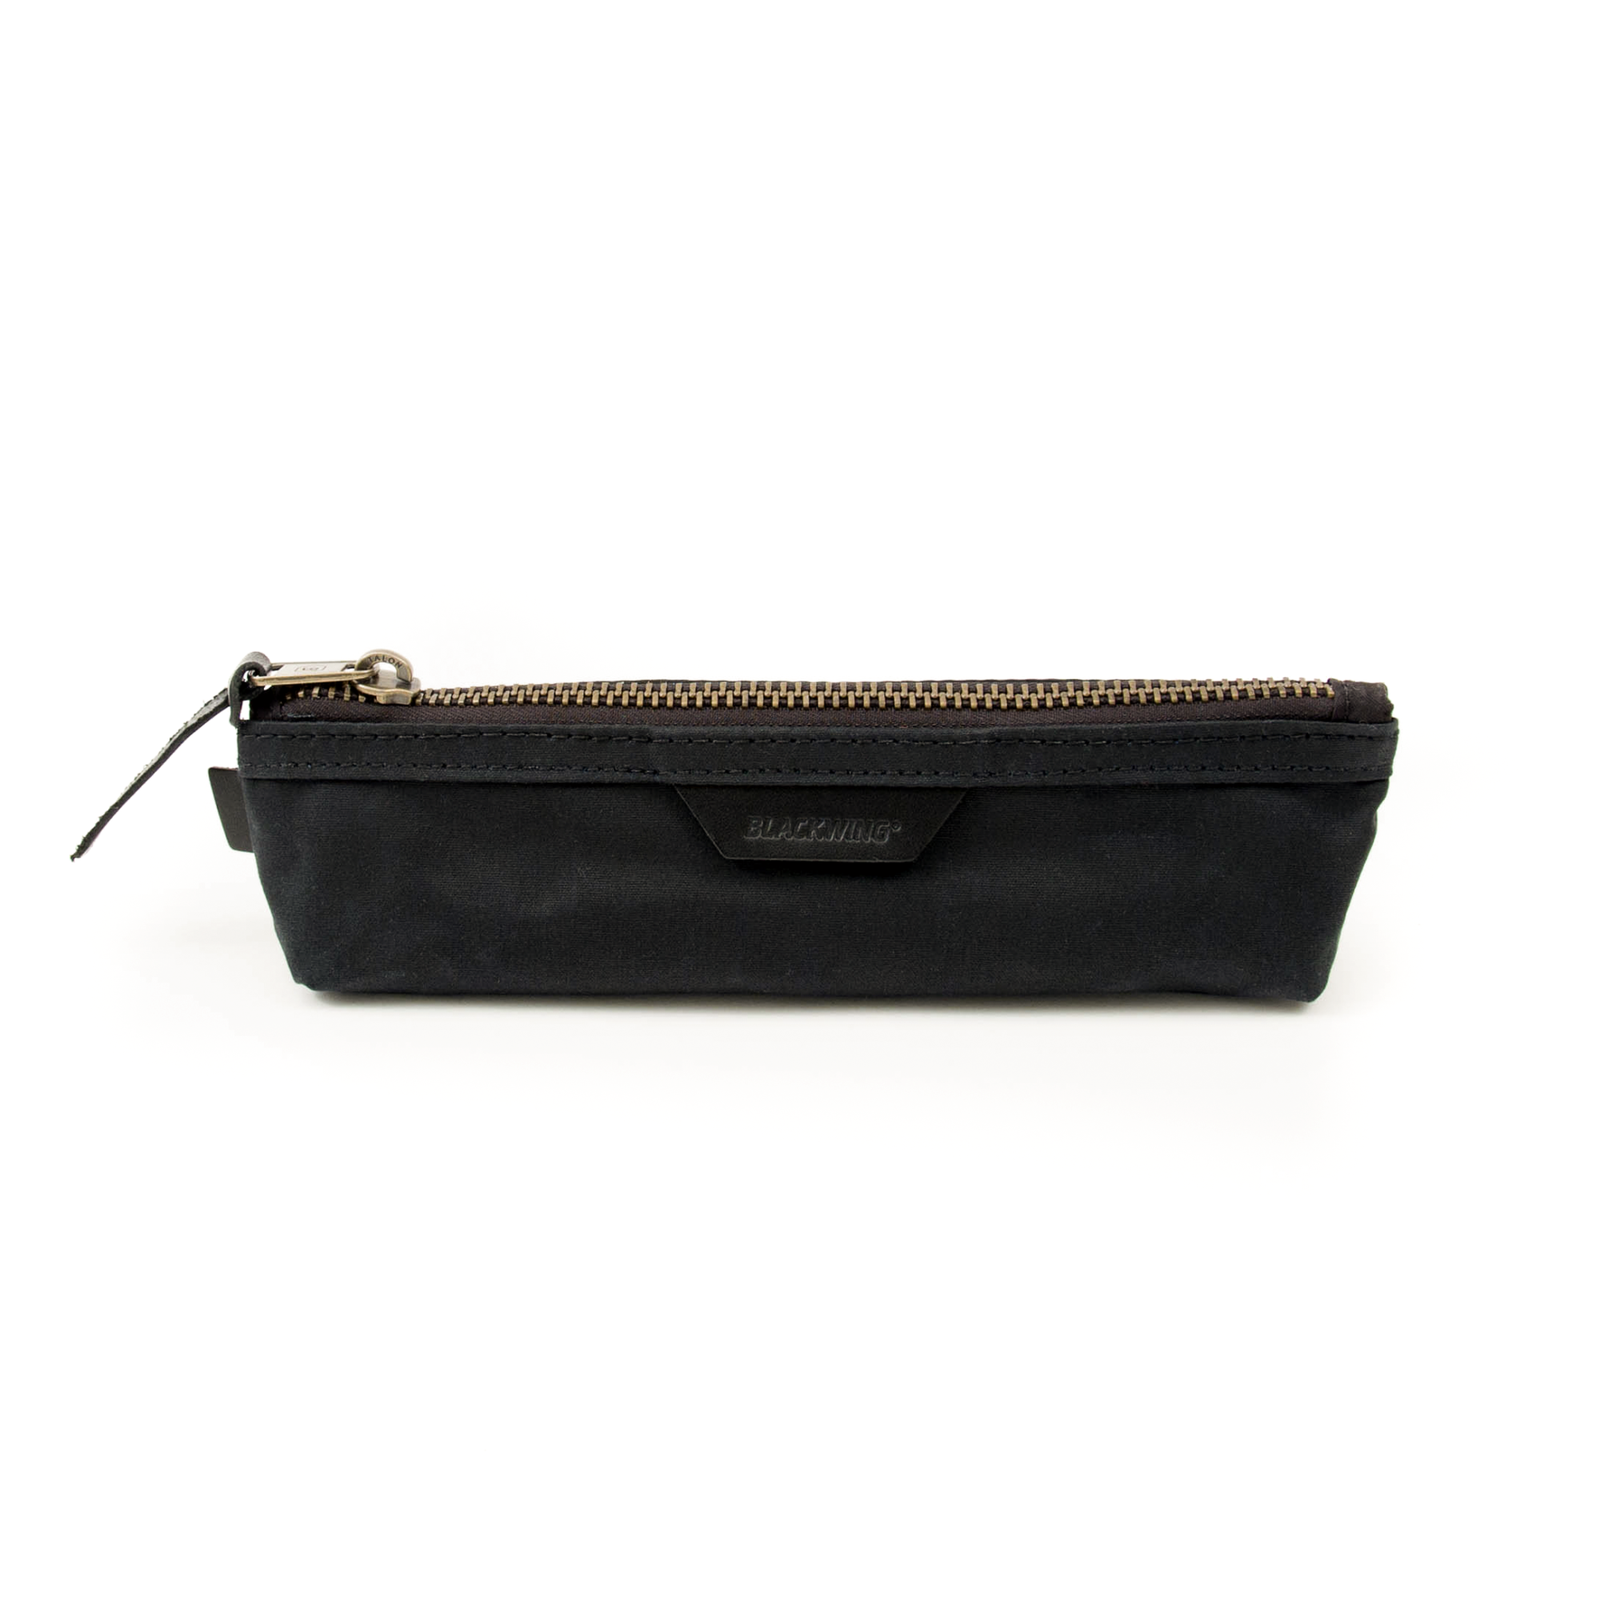 Blackwing Pencil Pouch (pencils shown not included)